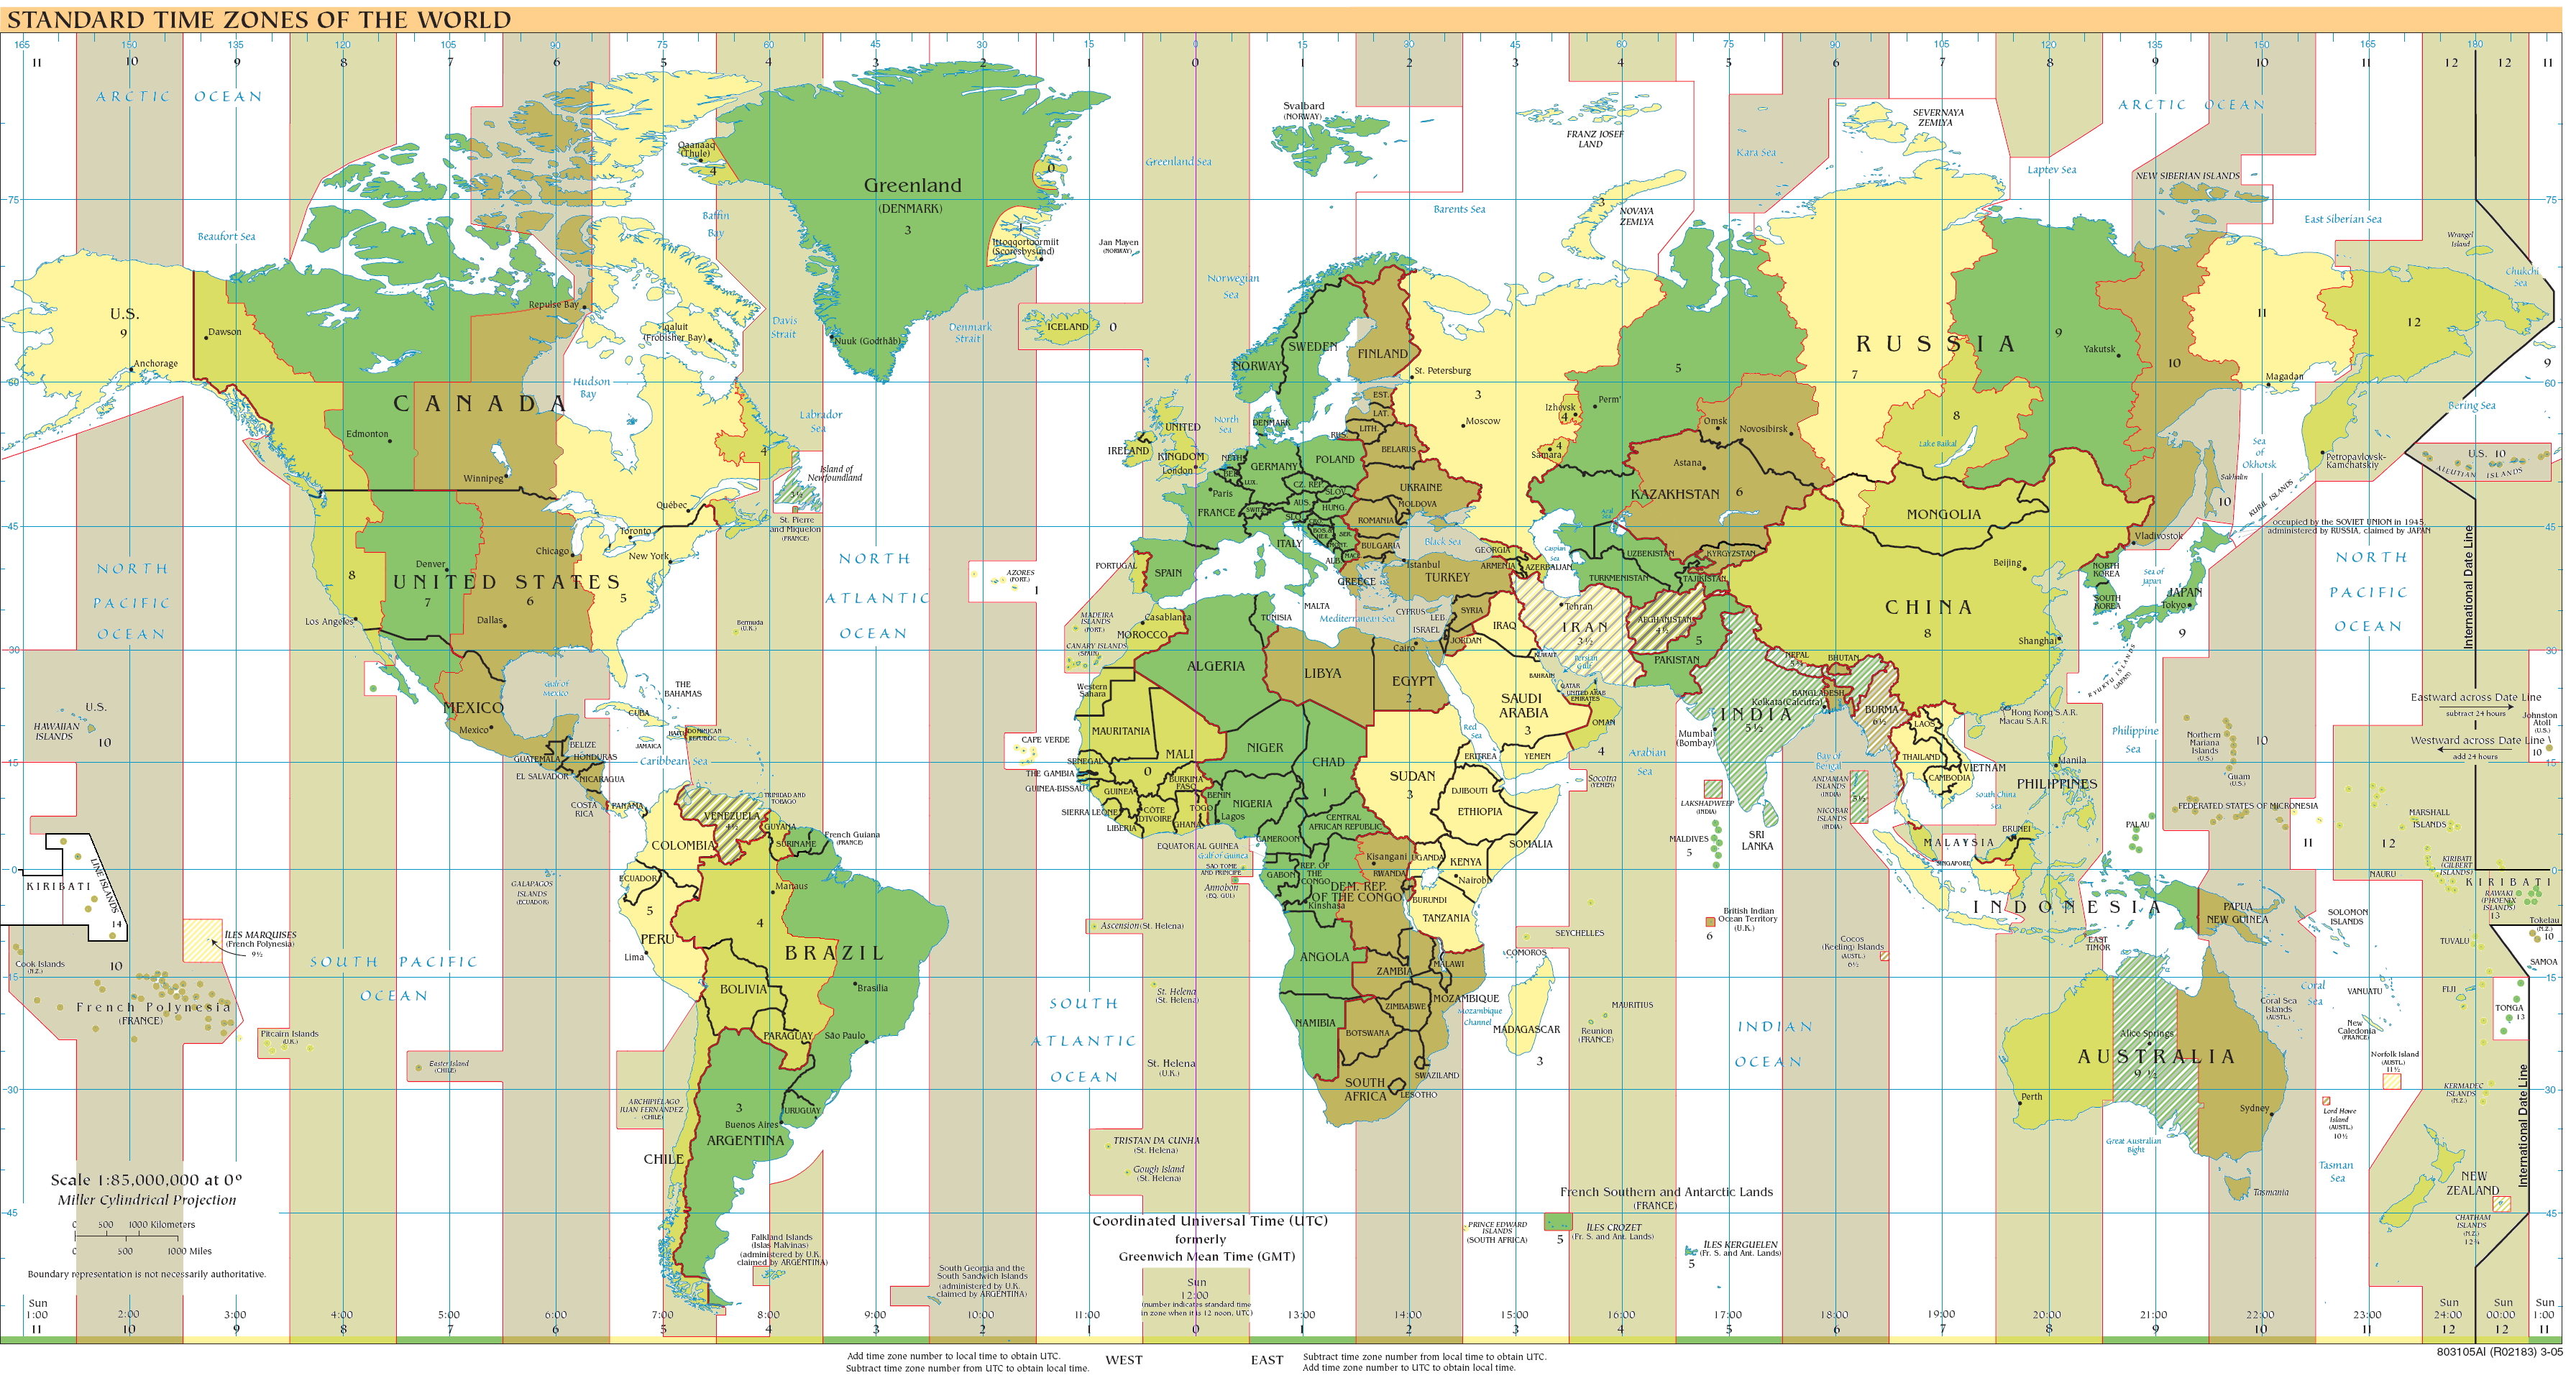 File:Imagen-Timezones2008.png - Wikimedia Commons